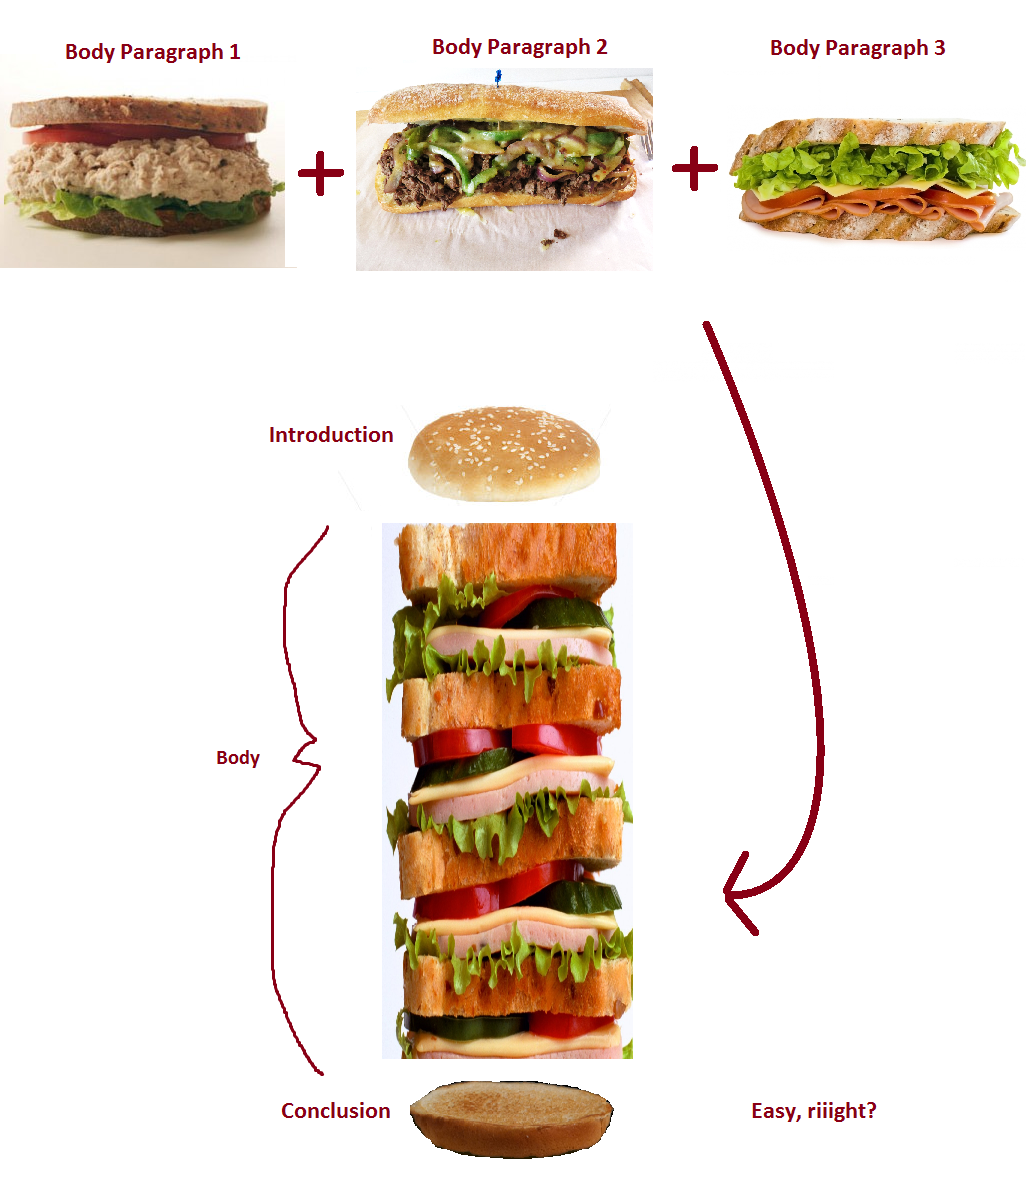 how to write an english essay sanctuary of synonyms in other words an essay is a giant sandwich burger and the best essays make for the sandwich iest of sandwich burgers